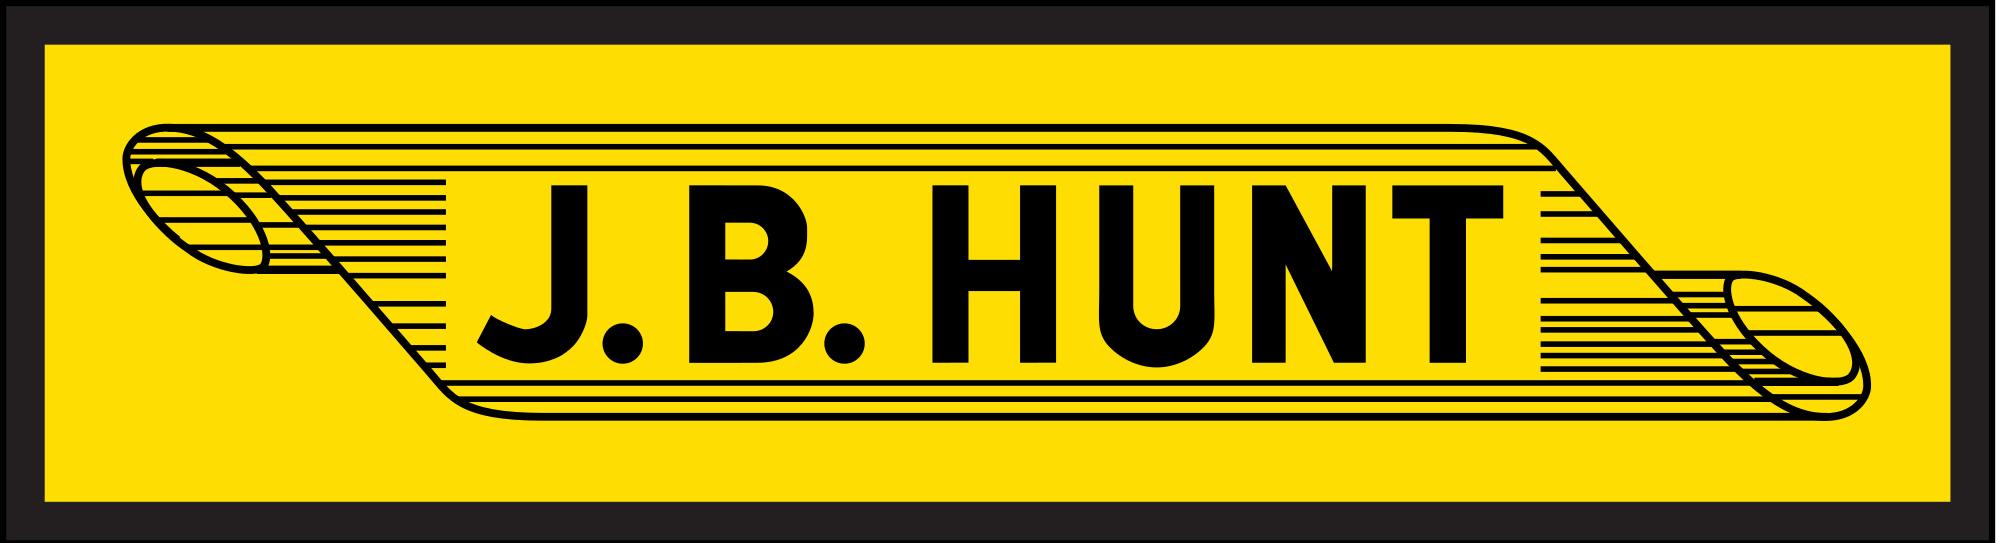 JB20Hunt20Transport20Logo_1541700789750.png